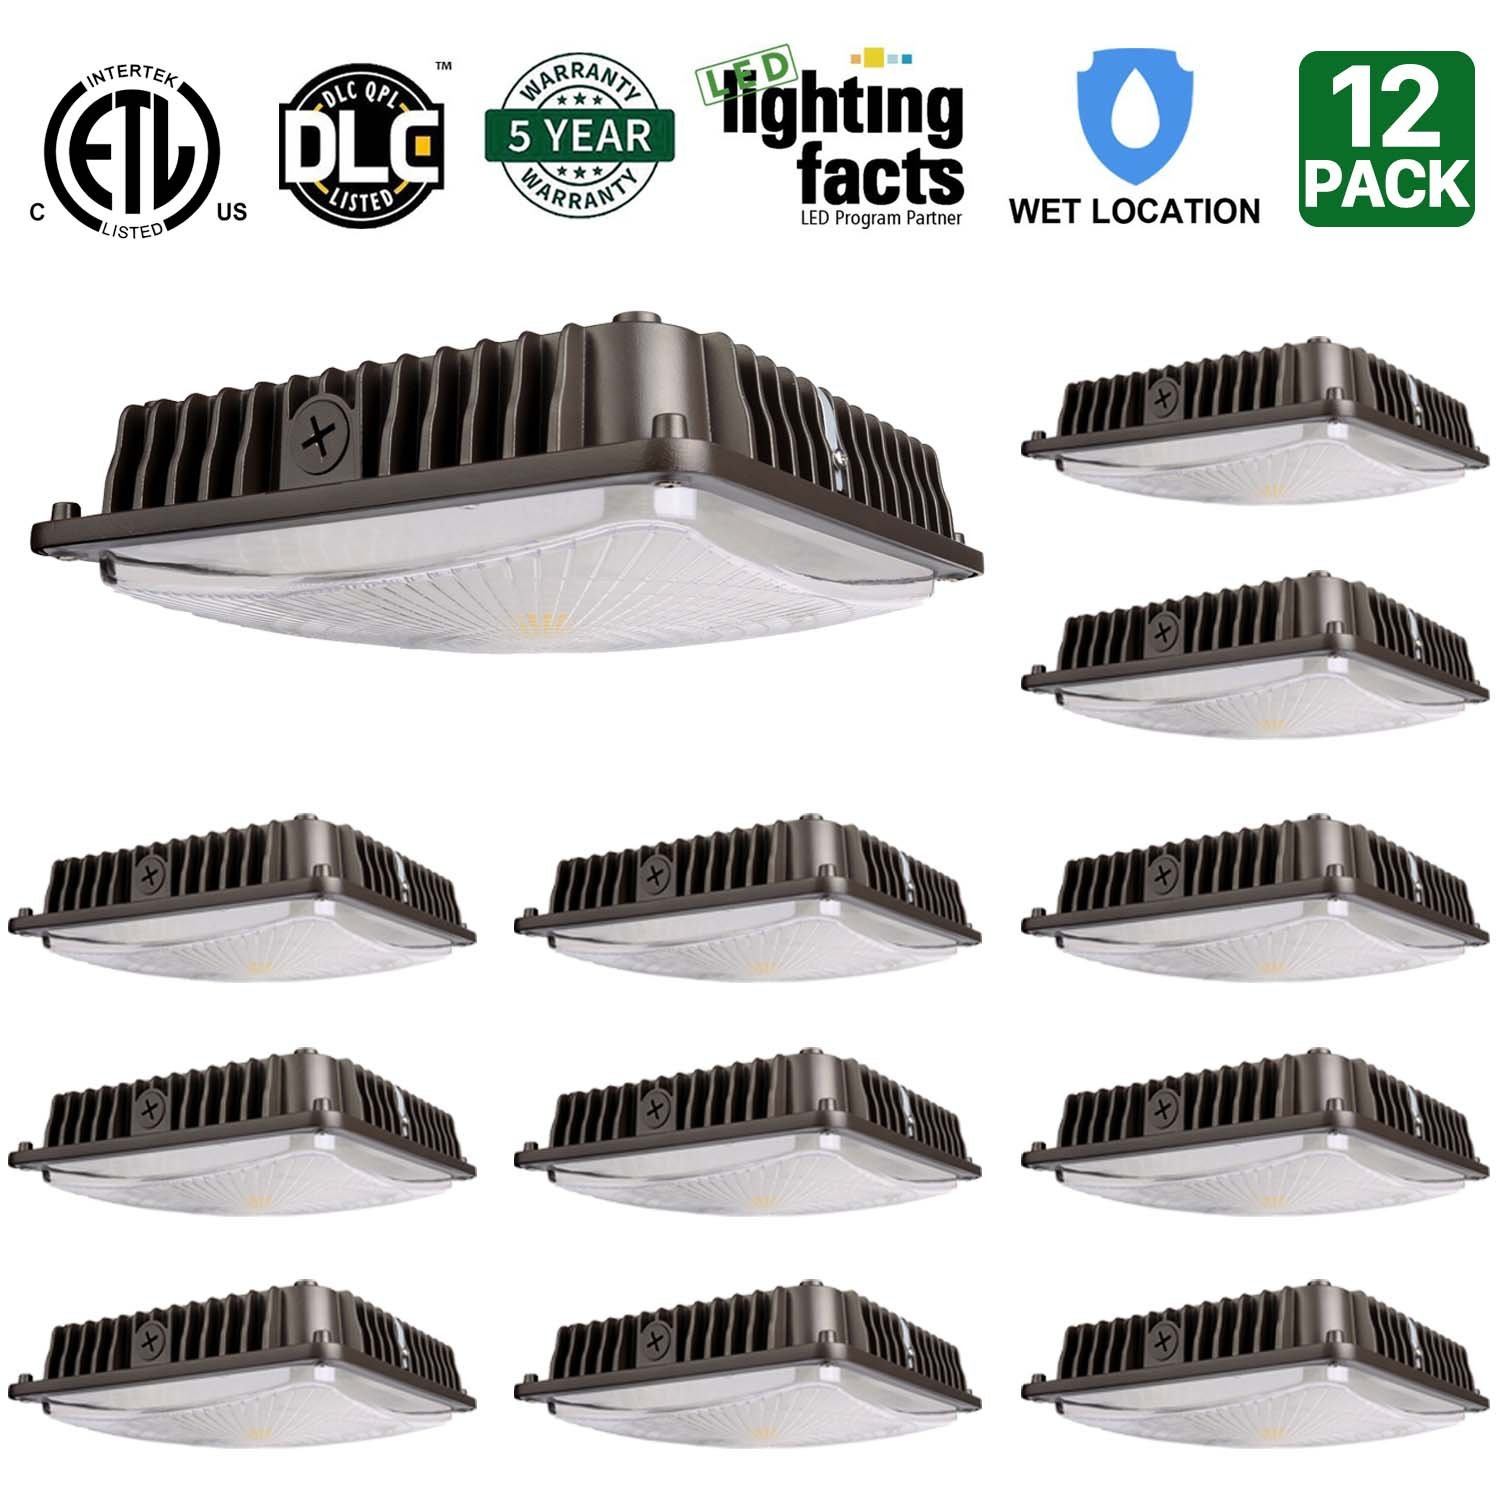 12 Pack Hykolity 70W LED Canopy Light Commerical Grade Weatherproof Outdoor High Bay Balcony Carport Driveway Ceiling Light [350W HID/HPS Equivalent] 6000lm 5000K DLC Qualified